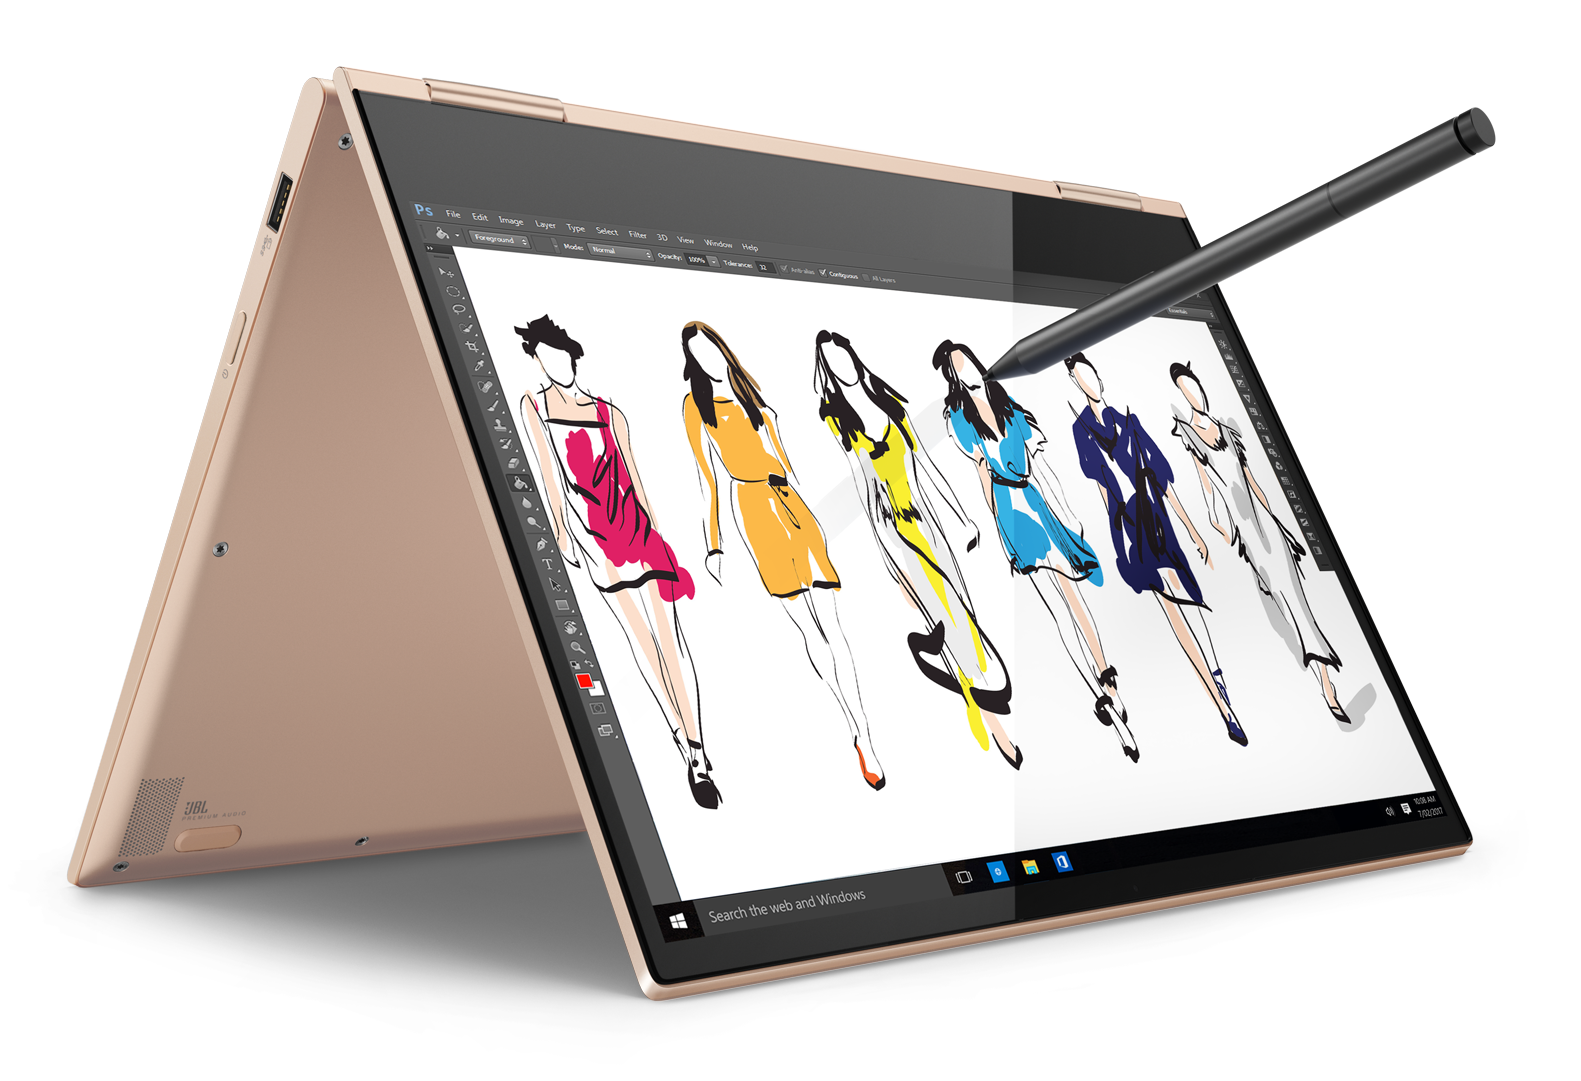 lenovo-yoga-730-laptop-notebook-tablet-hybrid-convertible-mwc.png